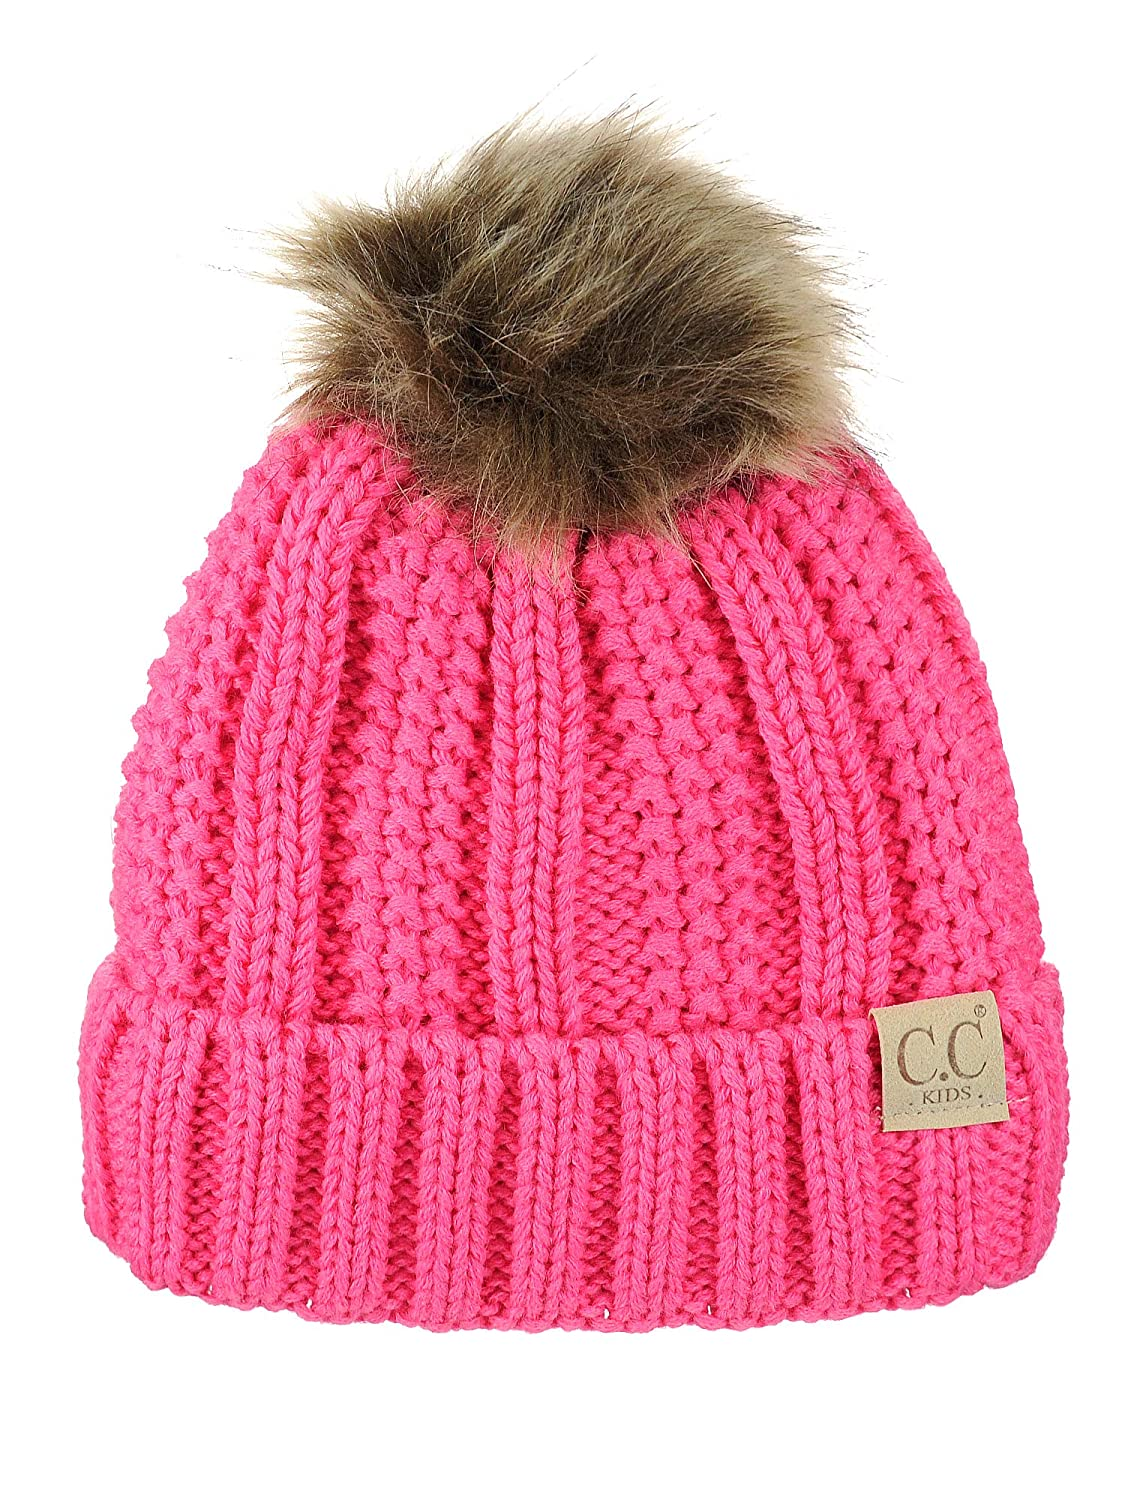 458efbbcb8a C.C Kids Childrens Cable Knit Faux Fuzzy Fur Pom Fleece Lined Cuff Beanie  Candy Pink ...